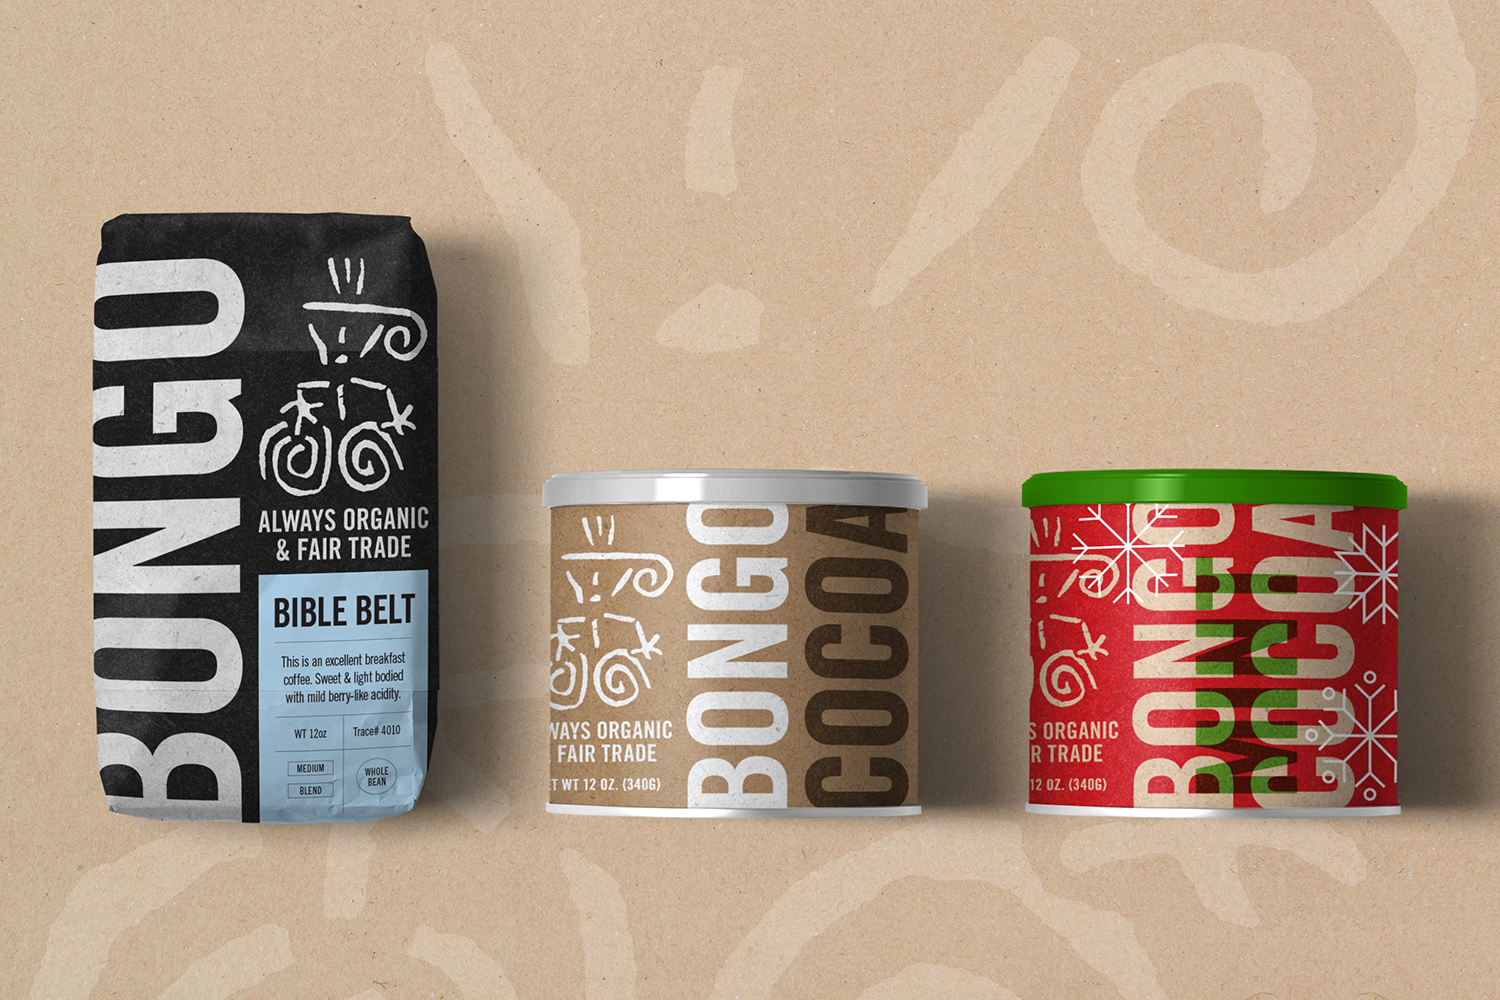 I refreshed Bongo's brand identity and redesigned all their packaging to reflect the new identity and positioning.